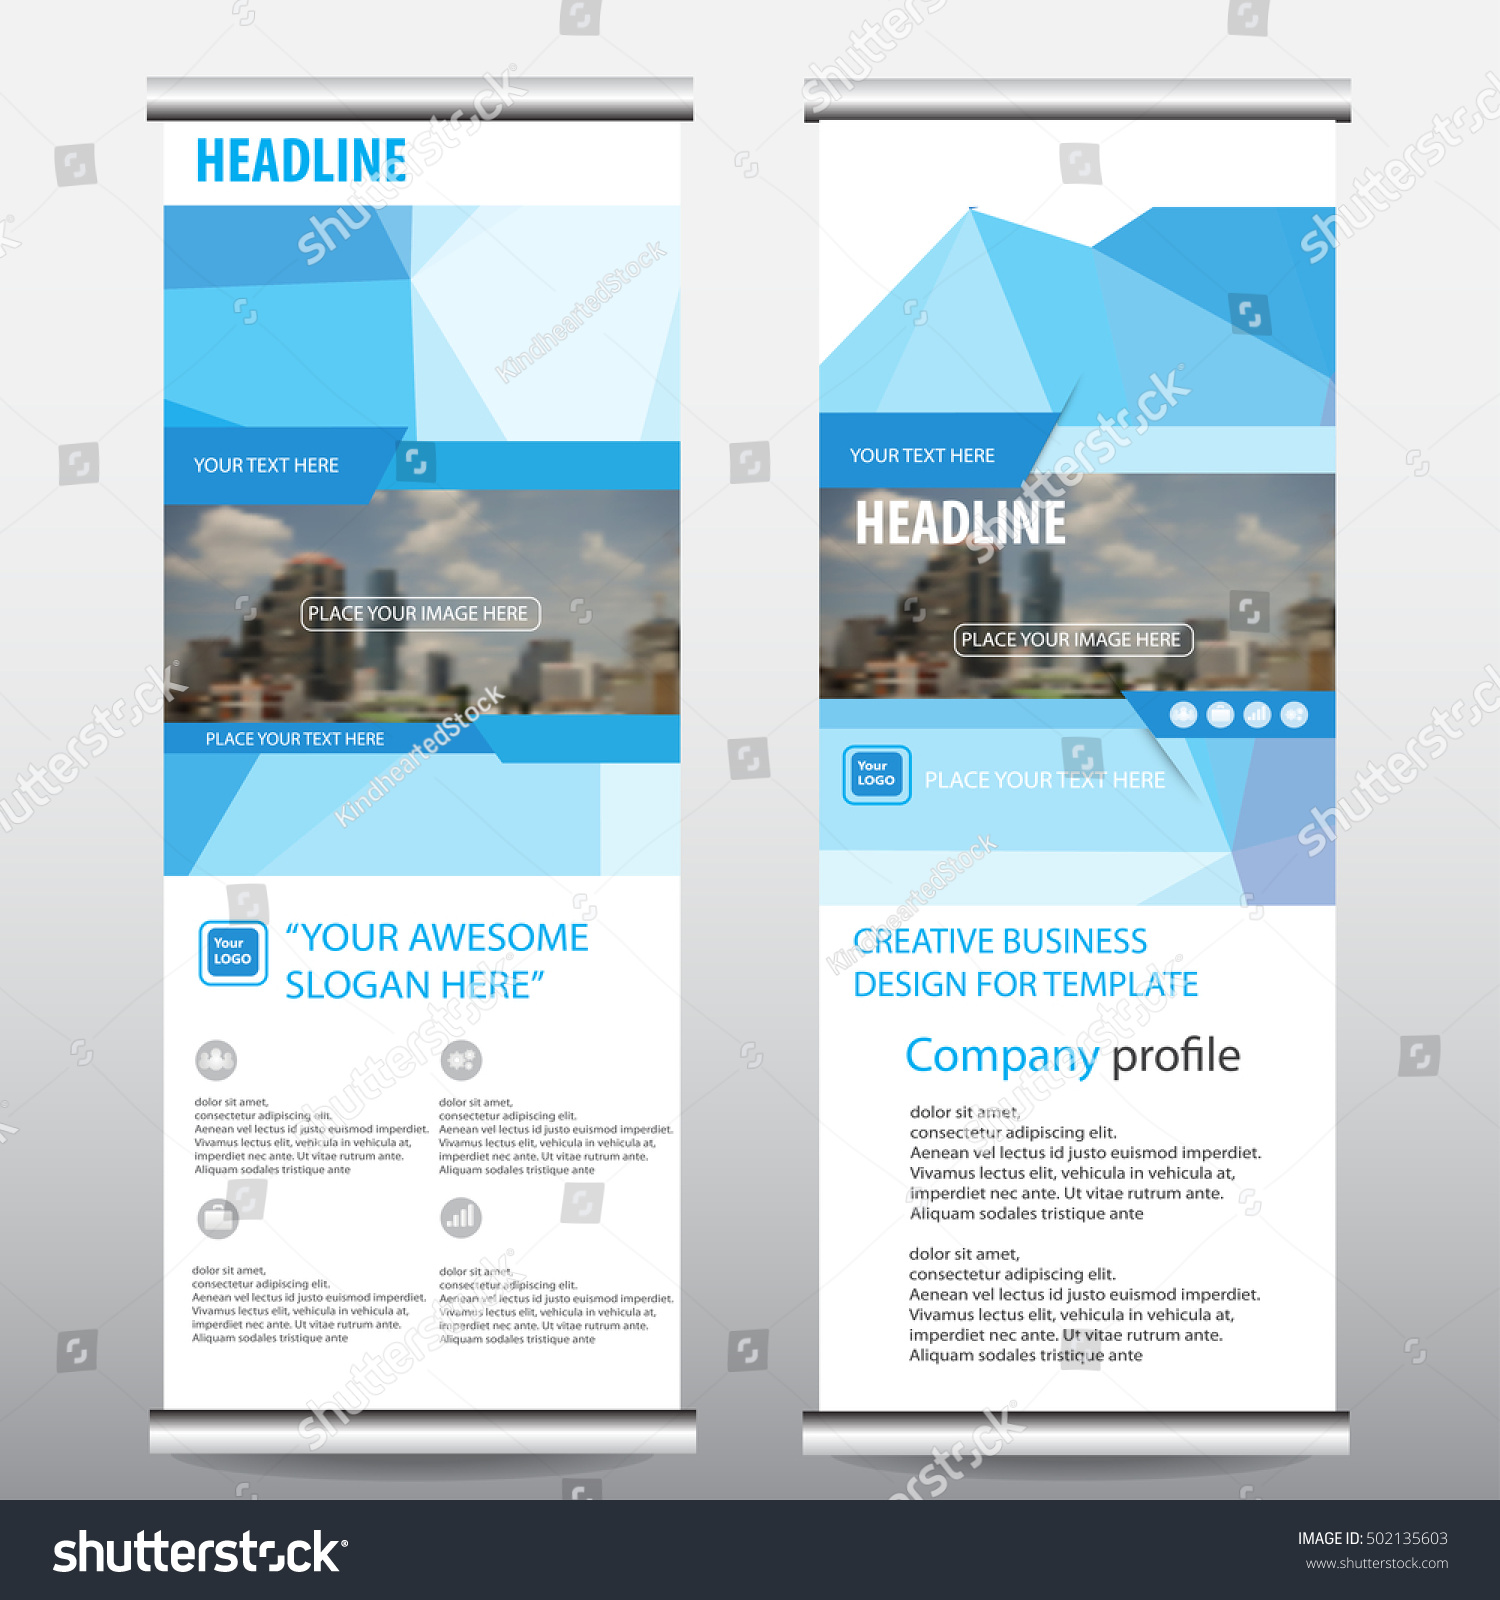 Green roll up business brochure flyer banner design vertical template - Blue Green Roll Up Business Brochure Flyer Banner Design Vertical Template Vector Cover Presentation Abstract